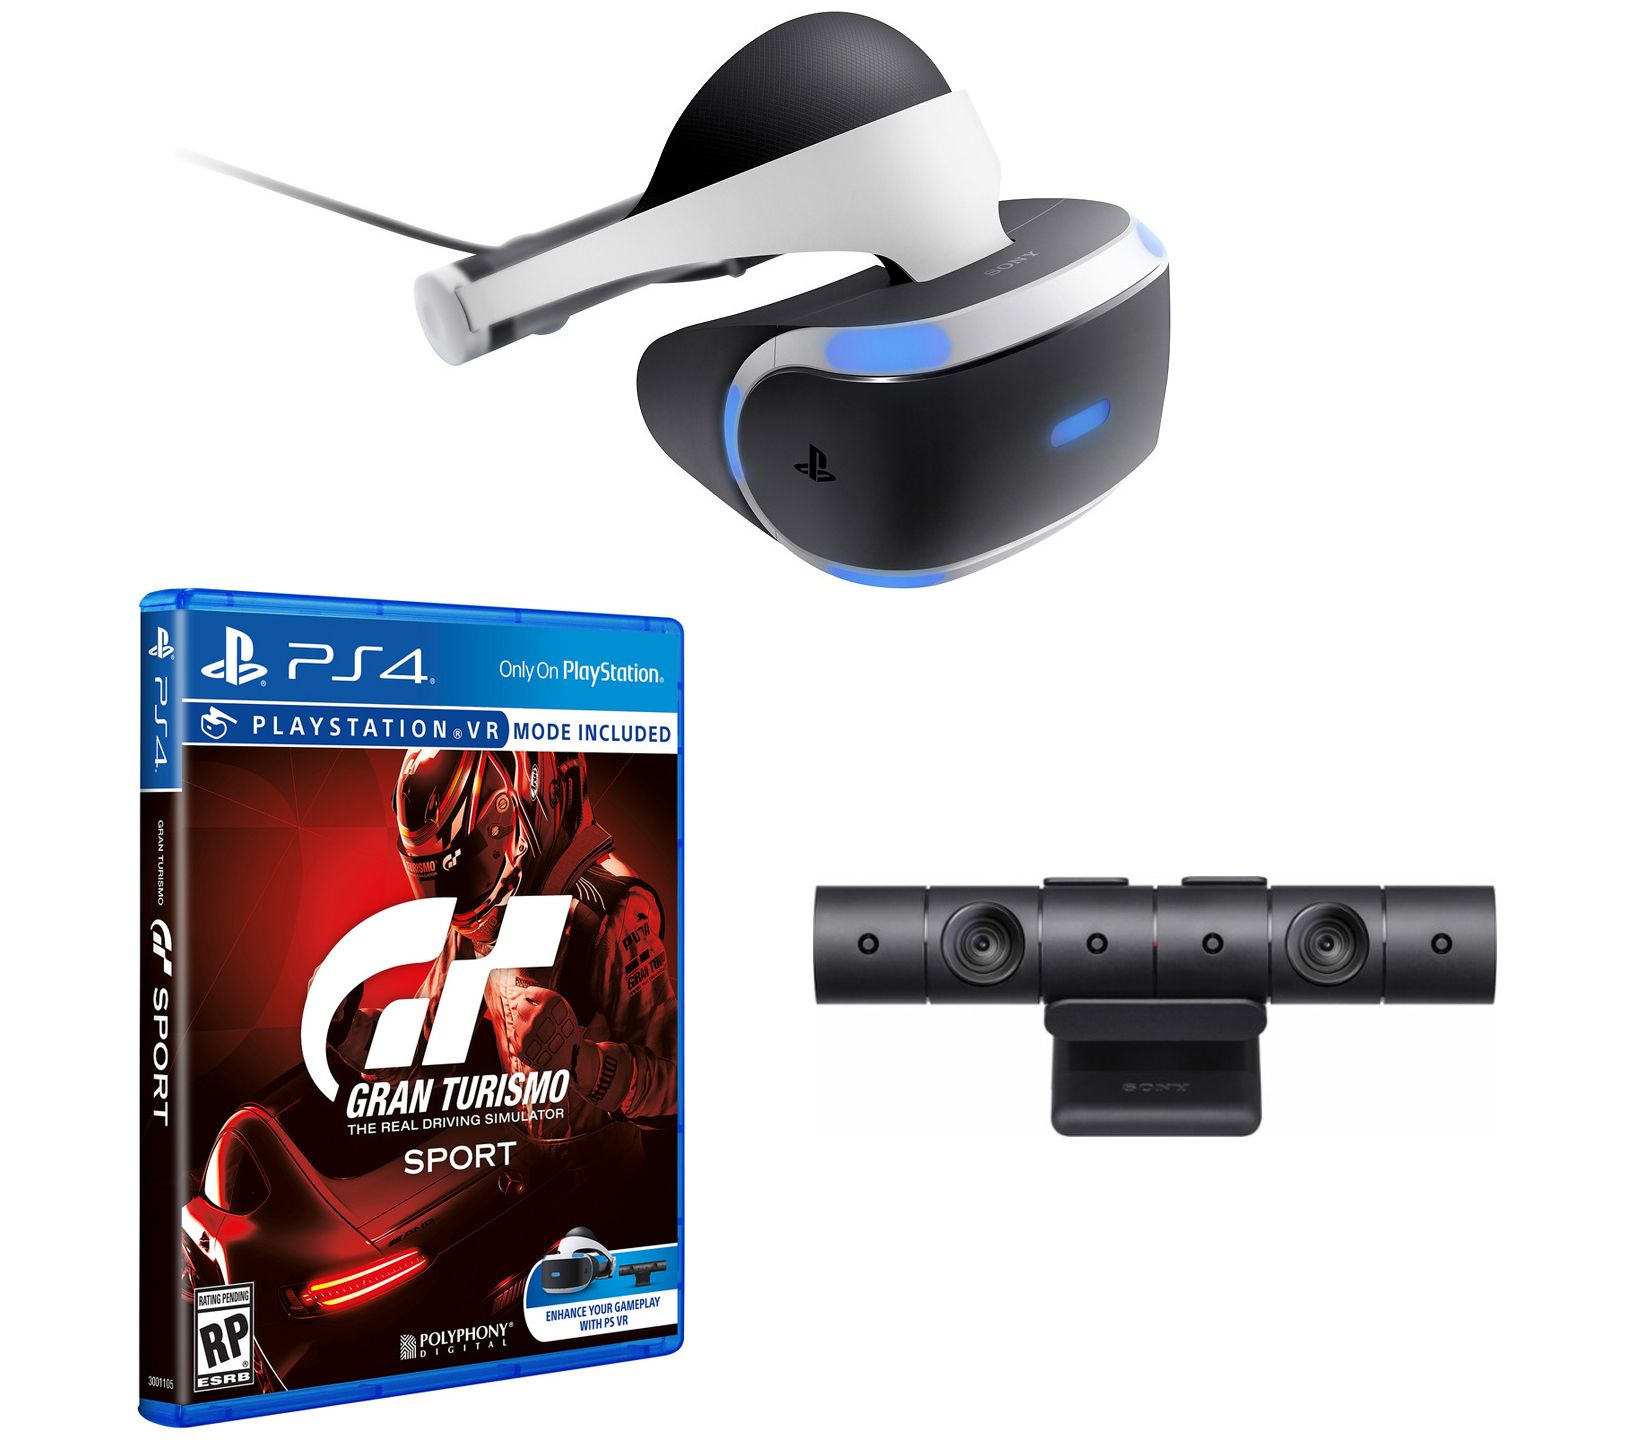 ps4 vr gran turismo sport bundle with headset camera. Black Bedroom Furniture Sets. Home Design Ideas